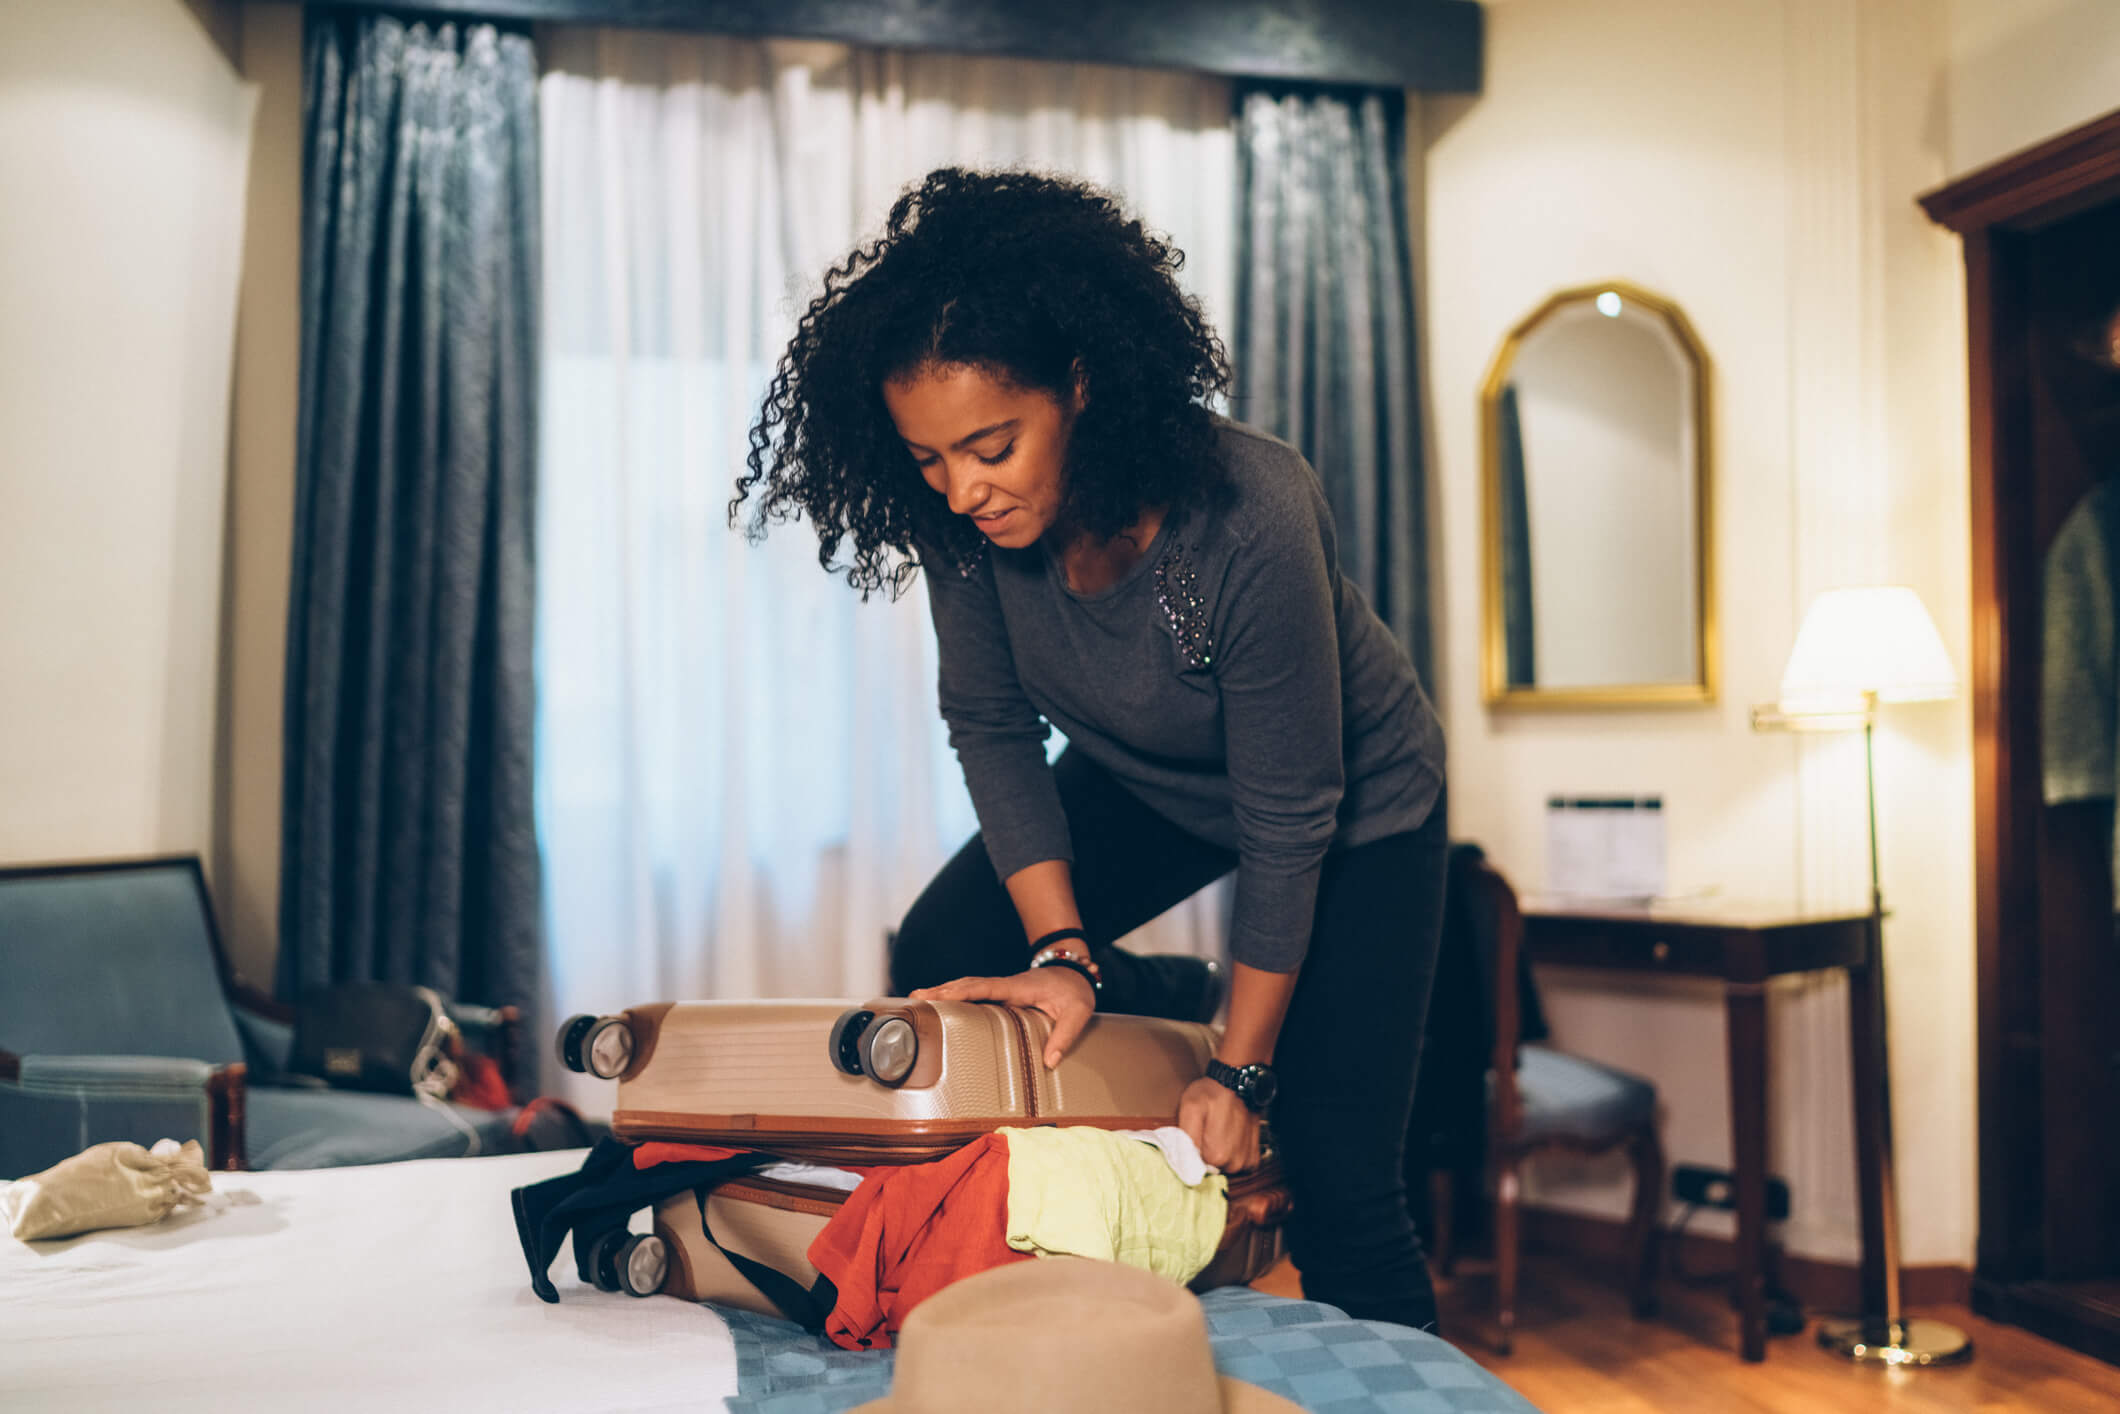 Young black woman trying to close a very full suitcase. She is in her bedroom.